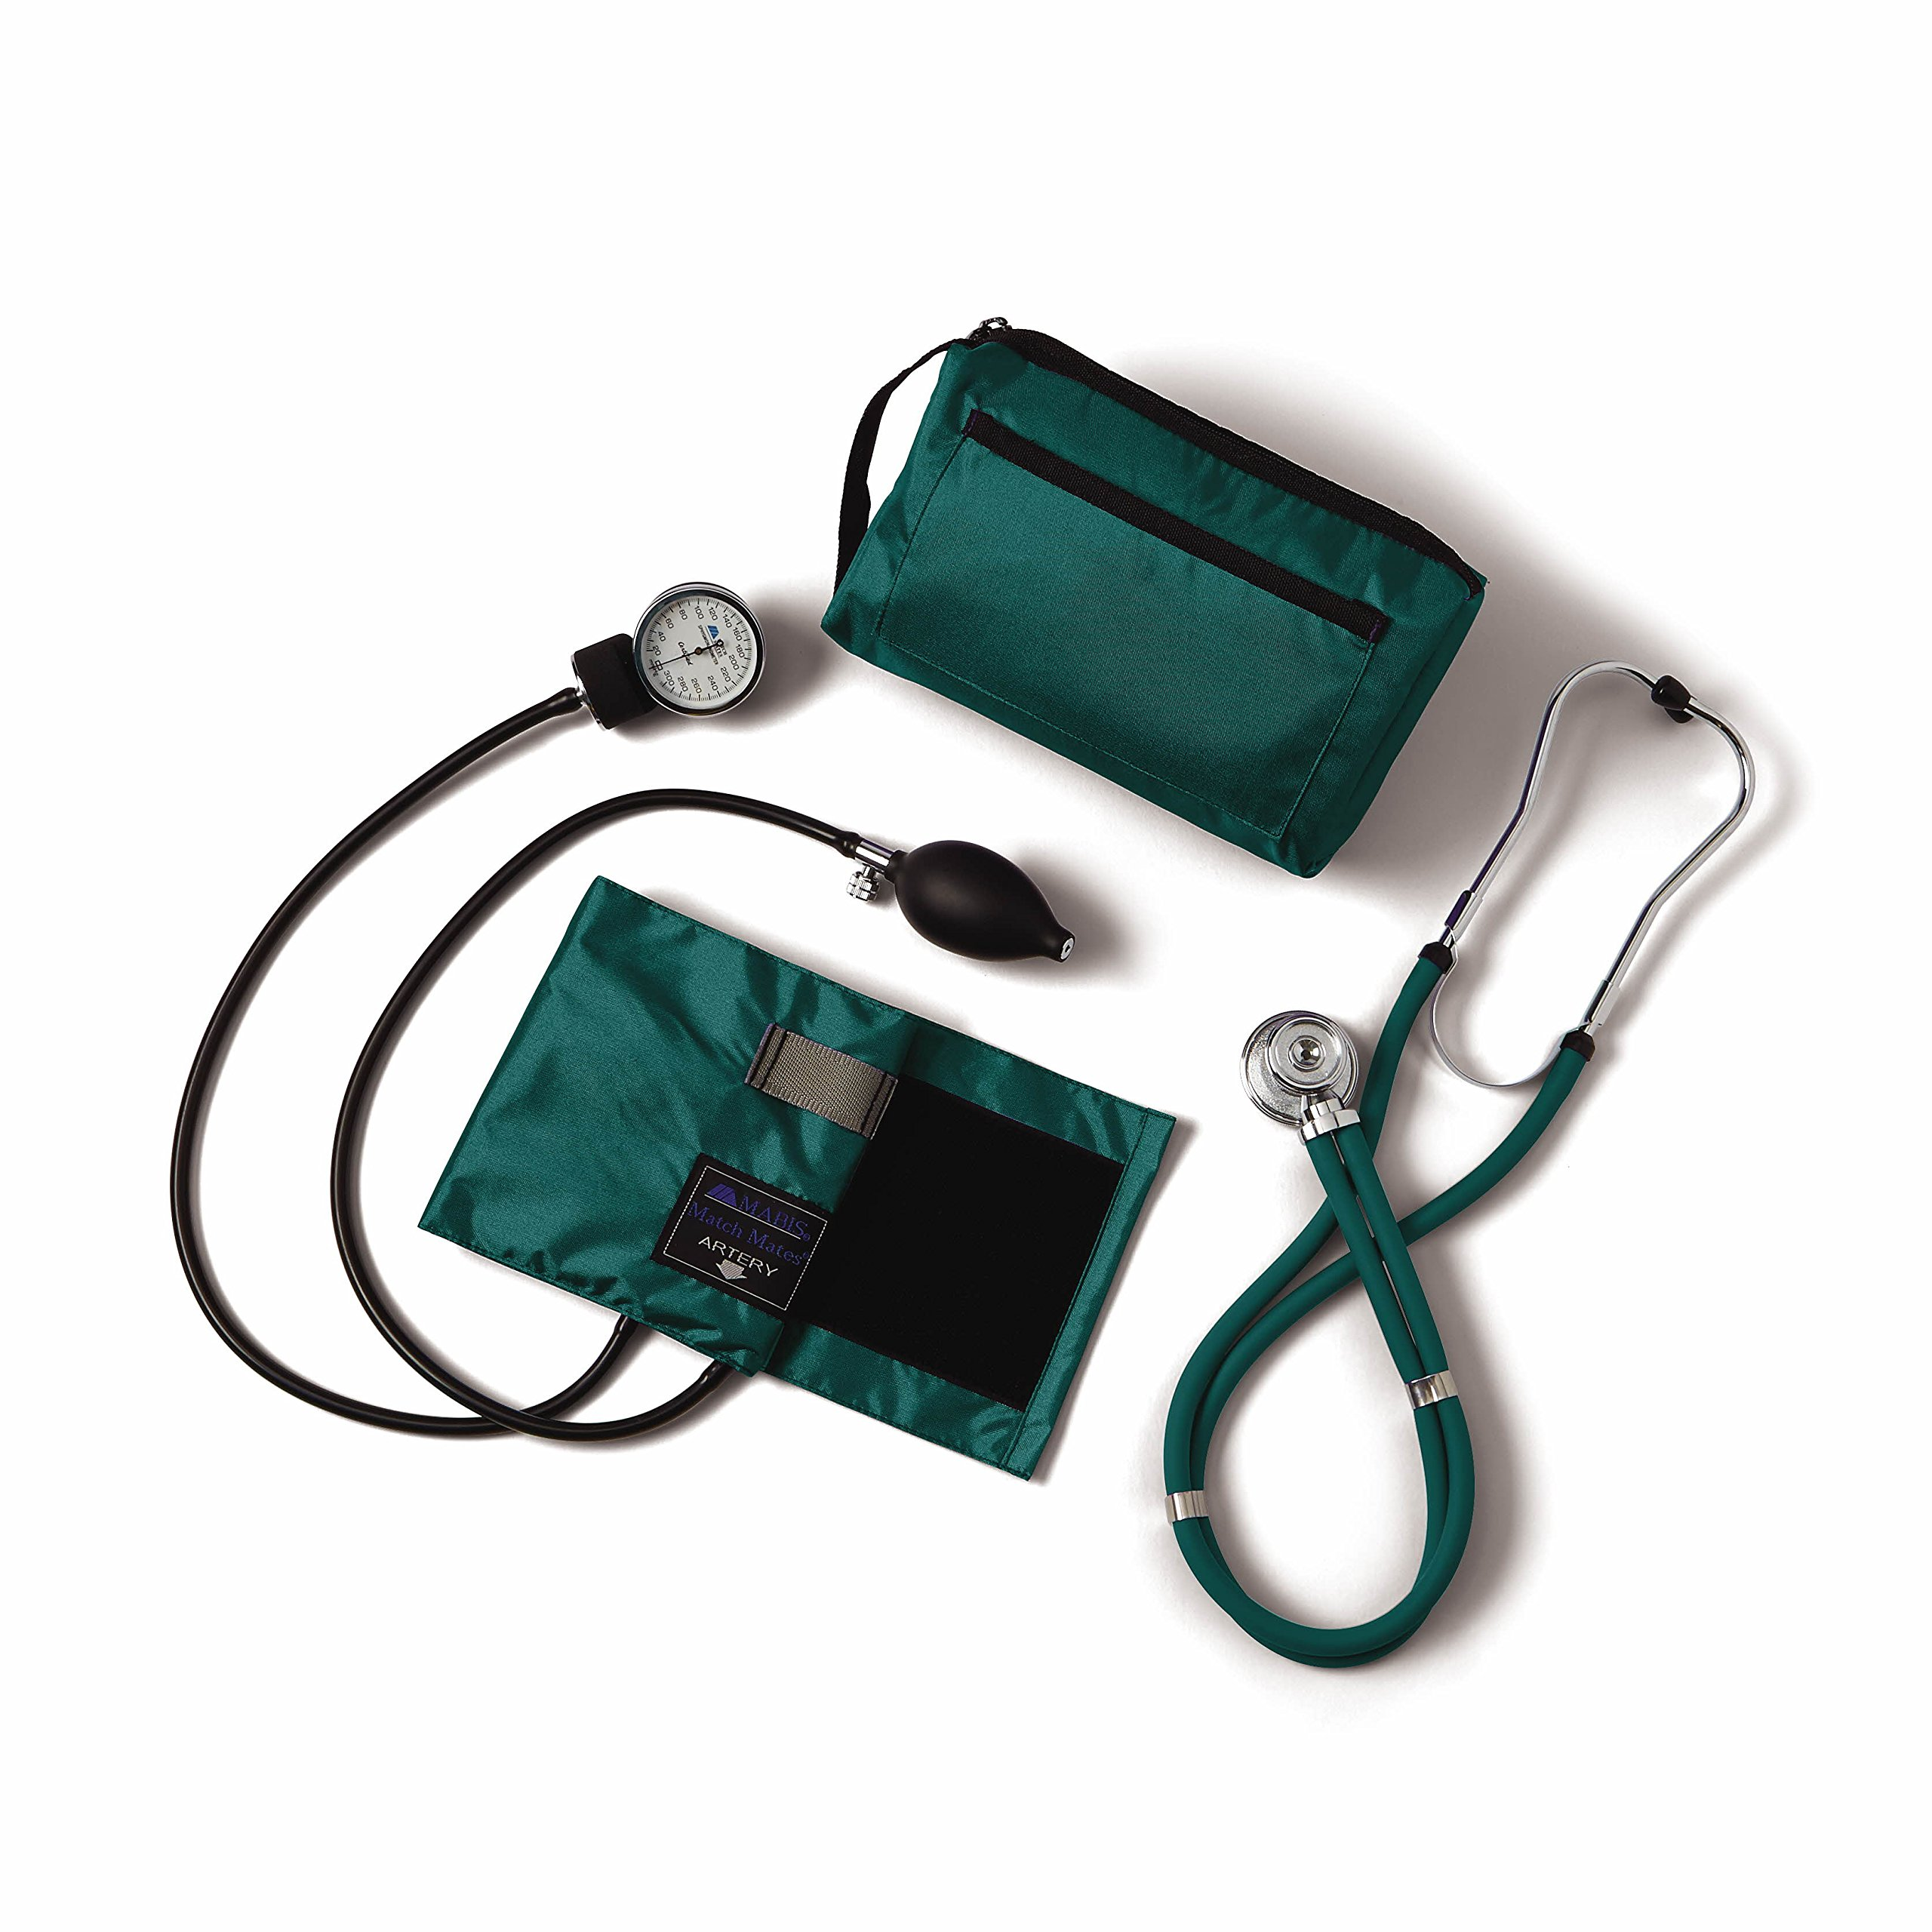 Medline Compli-Mates Aneroid Sphygmomanometer and Sprague Rappaport Stethoscope Kit, Carrying Case, Adult Blood Pressure Cuff, Manual, Professional, Hunter Green